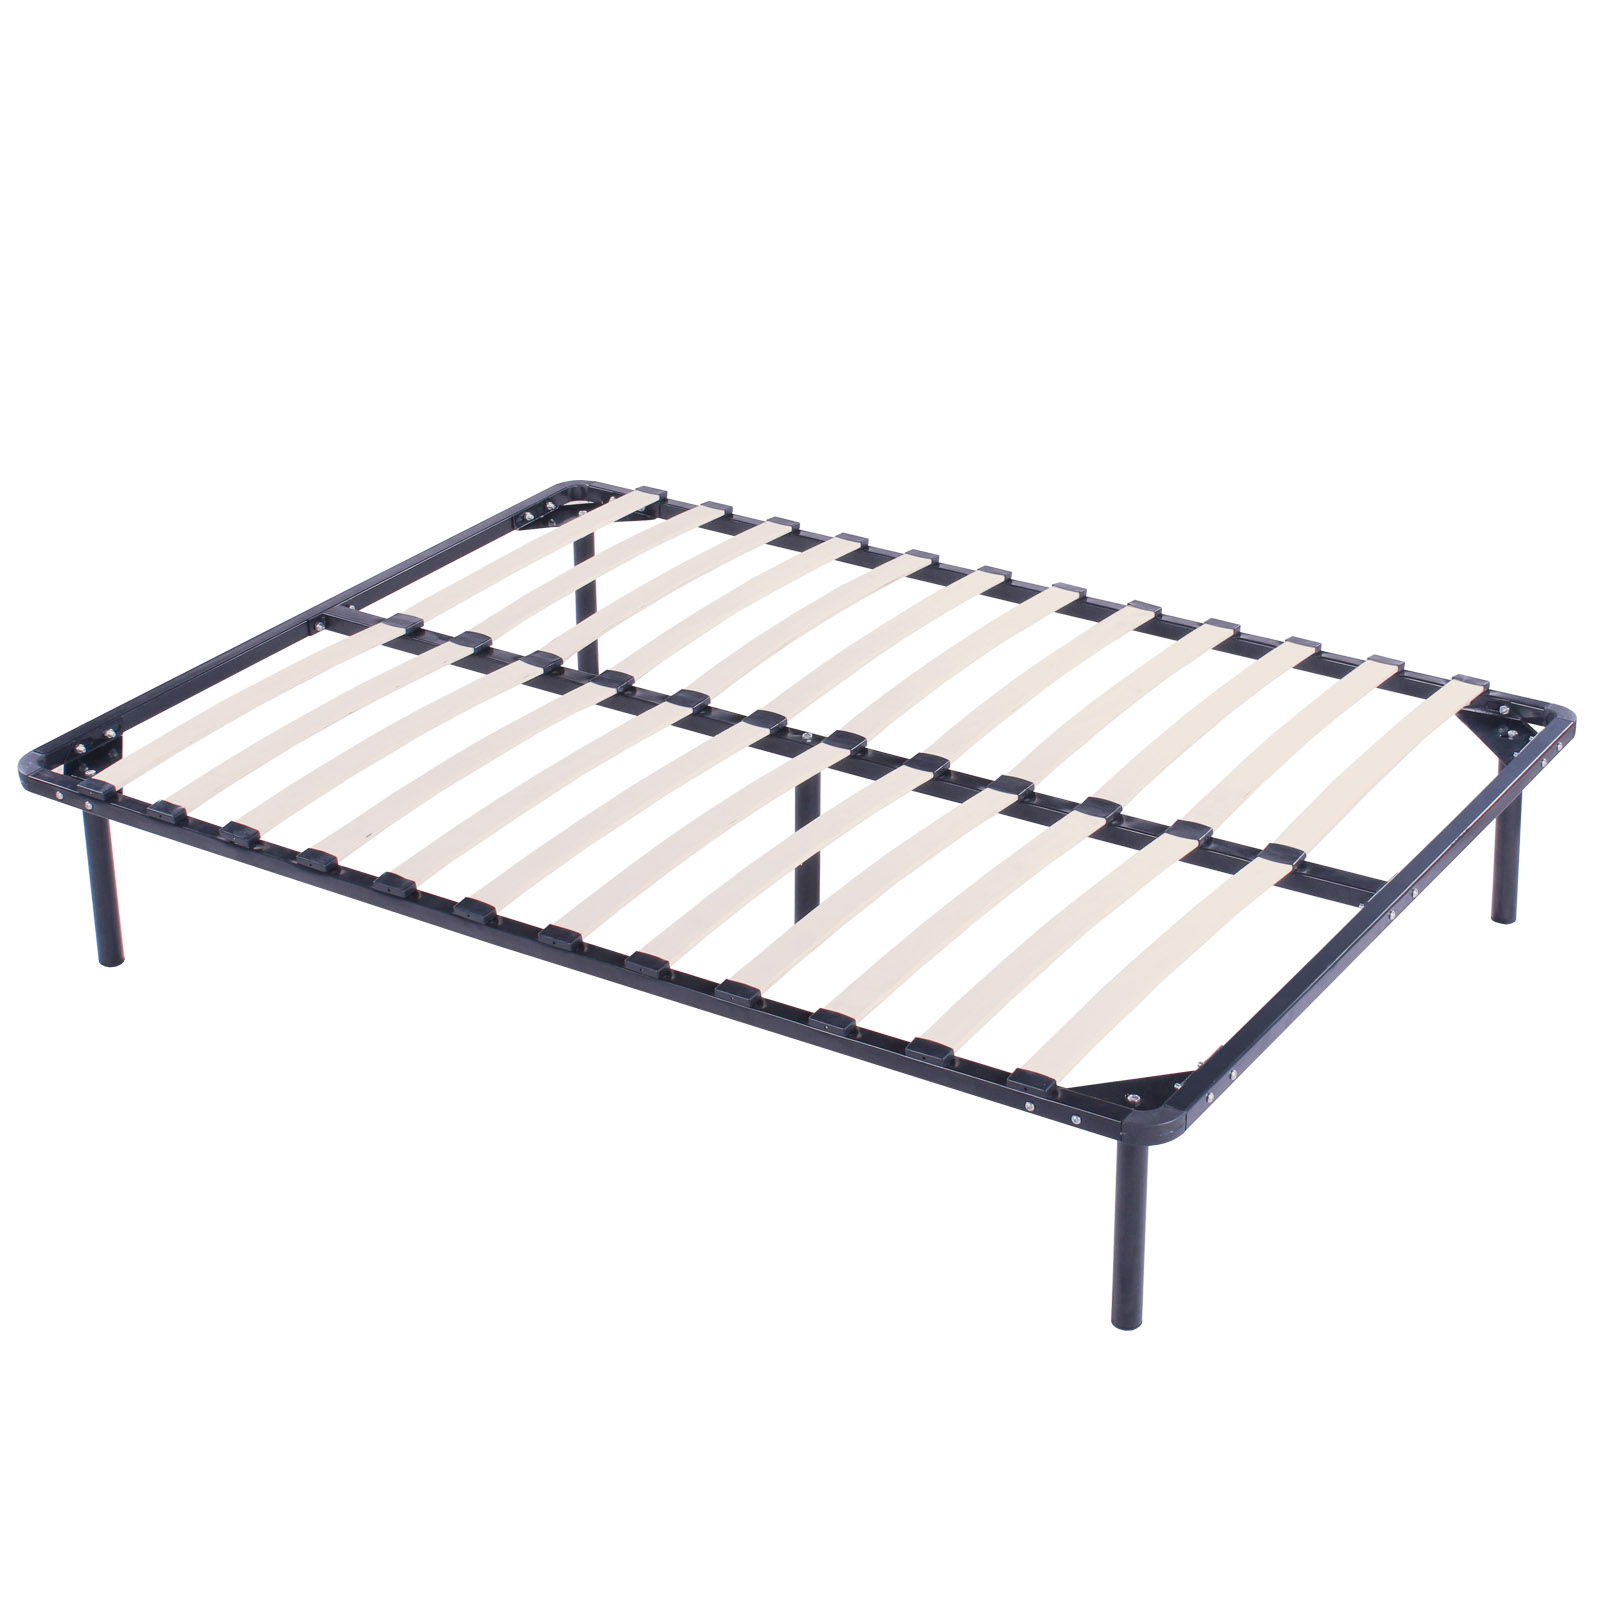 Full size wood slats metal bed frame platform mattress for Full size bed frame